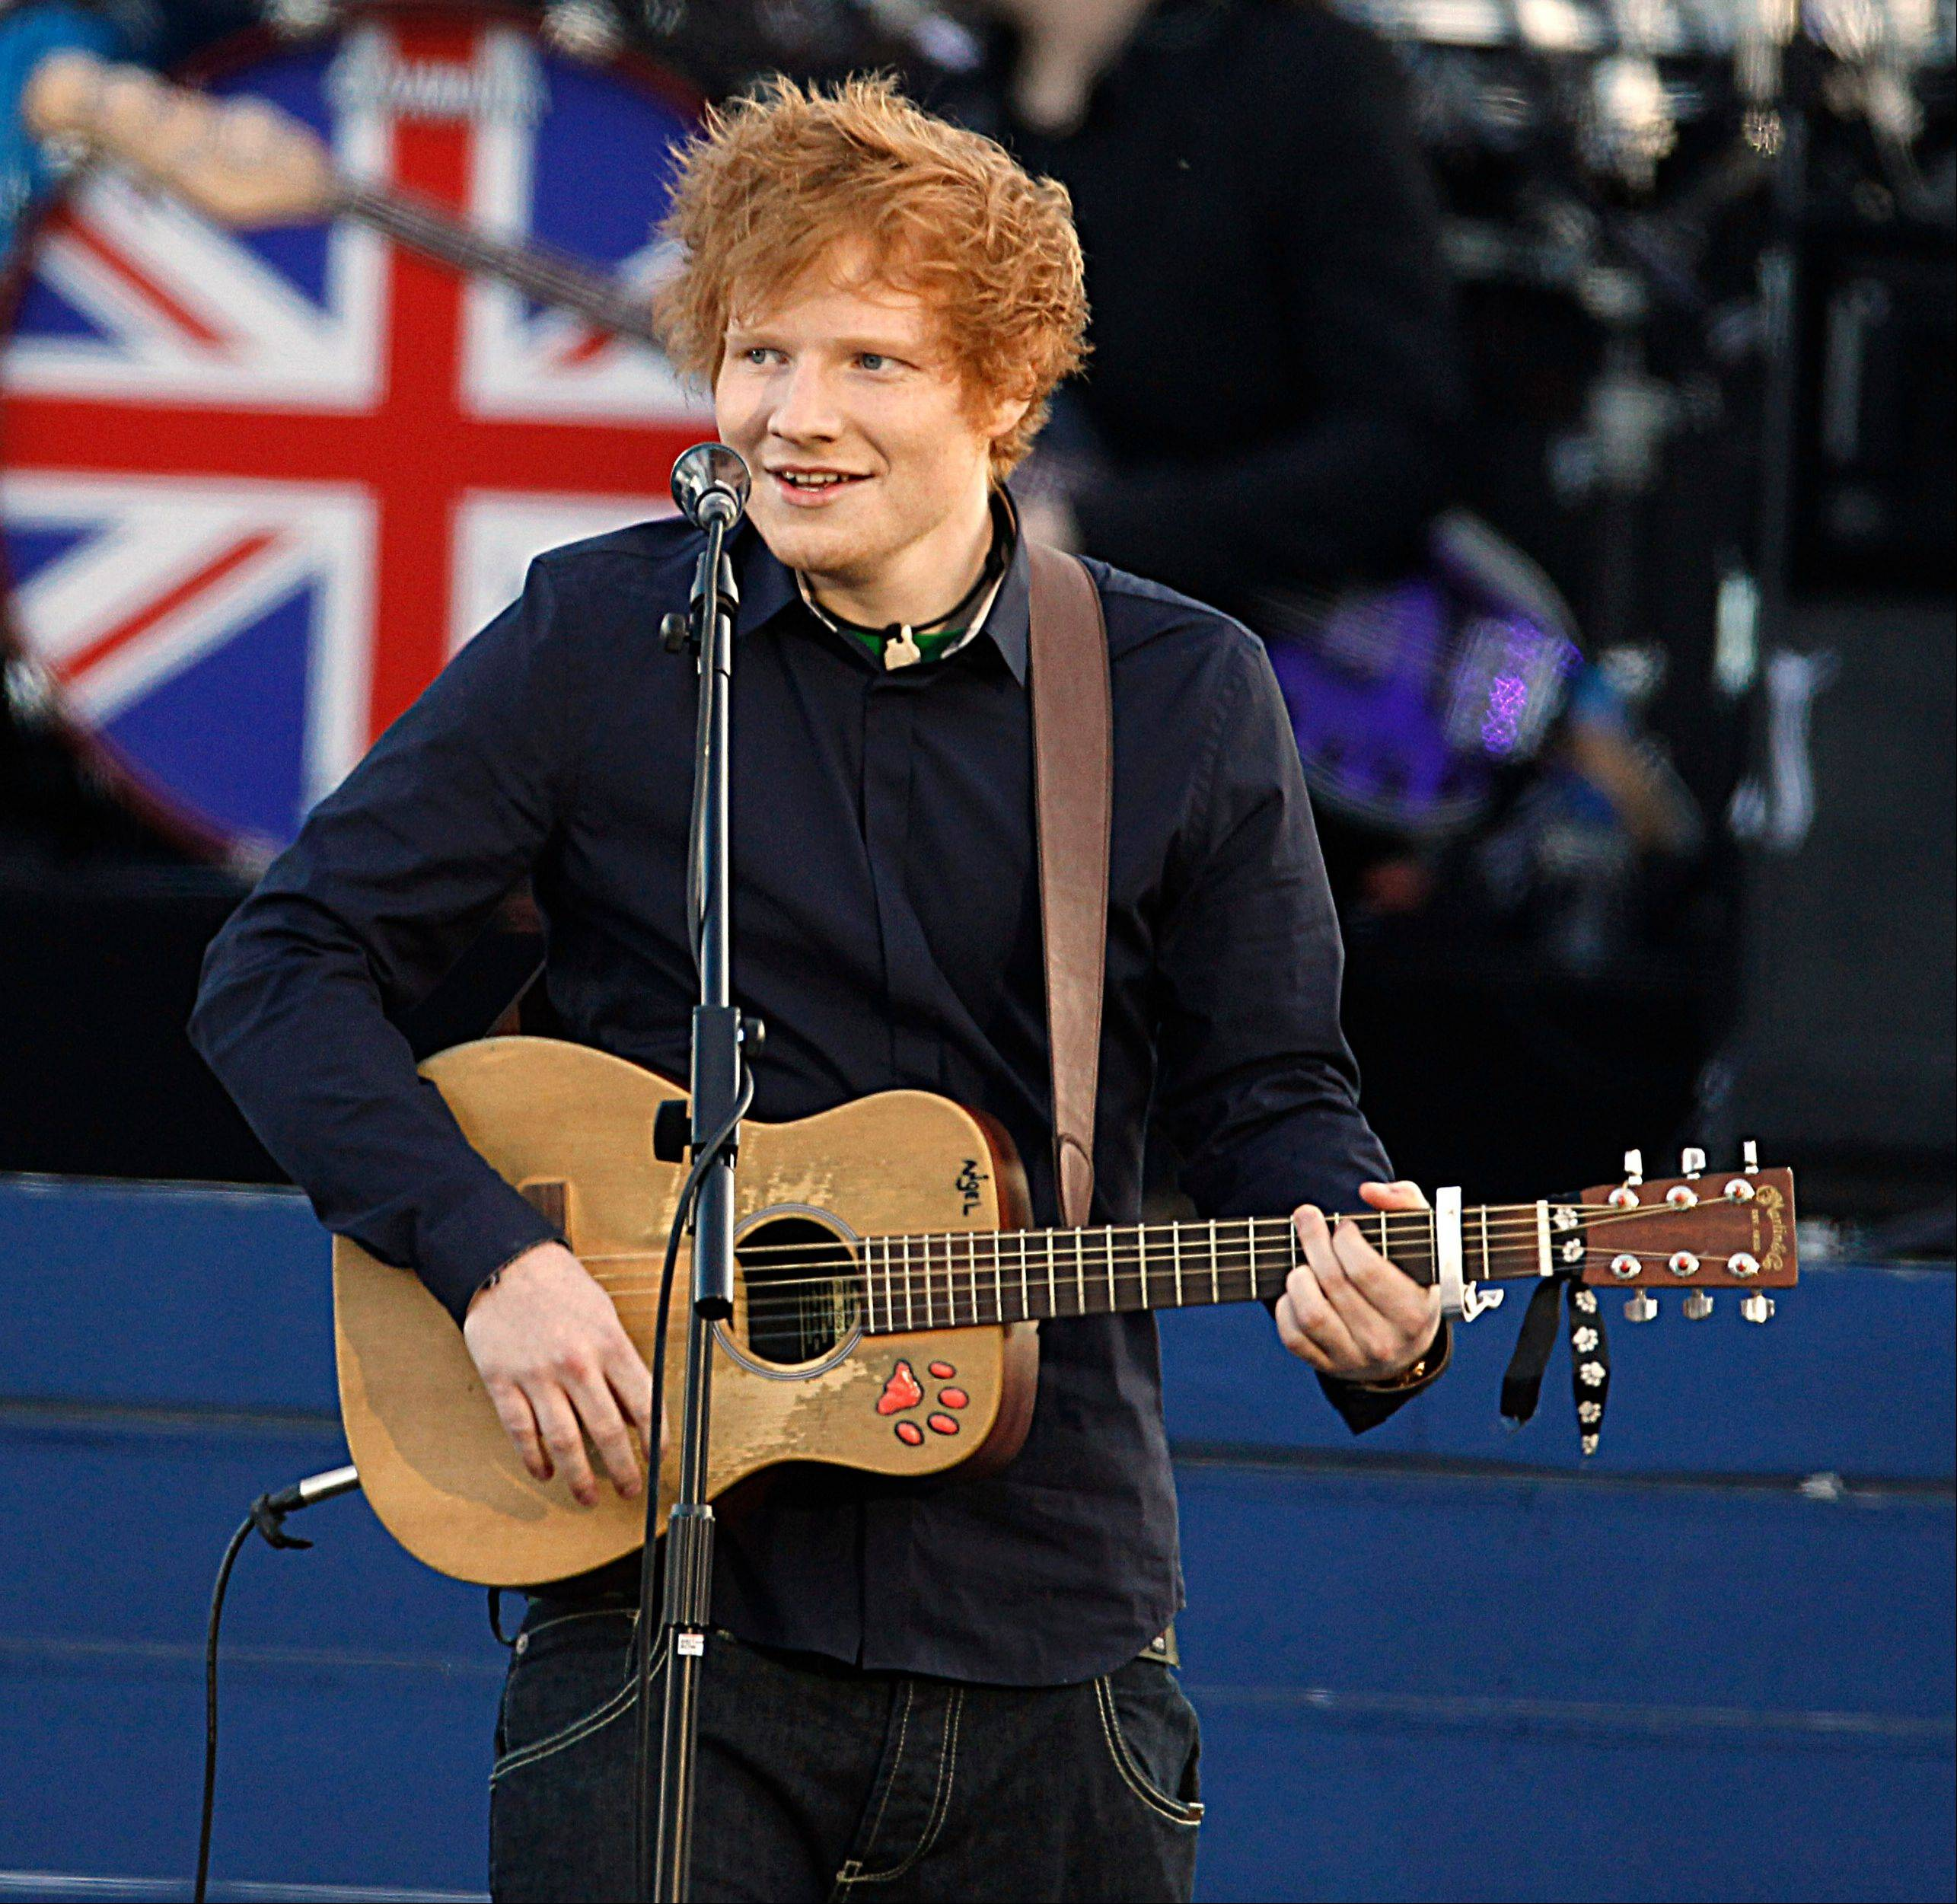 Ed Sheeran performs at the Queen�s Jubilee Concert in front of Buckingham Palace in London. Sheeran, who wrote the pop ballad �Moments,� performed by One Direction, recently wrote and recorded songs with Taylor Swift for her upcoming fourth album.